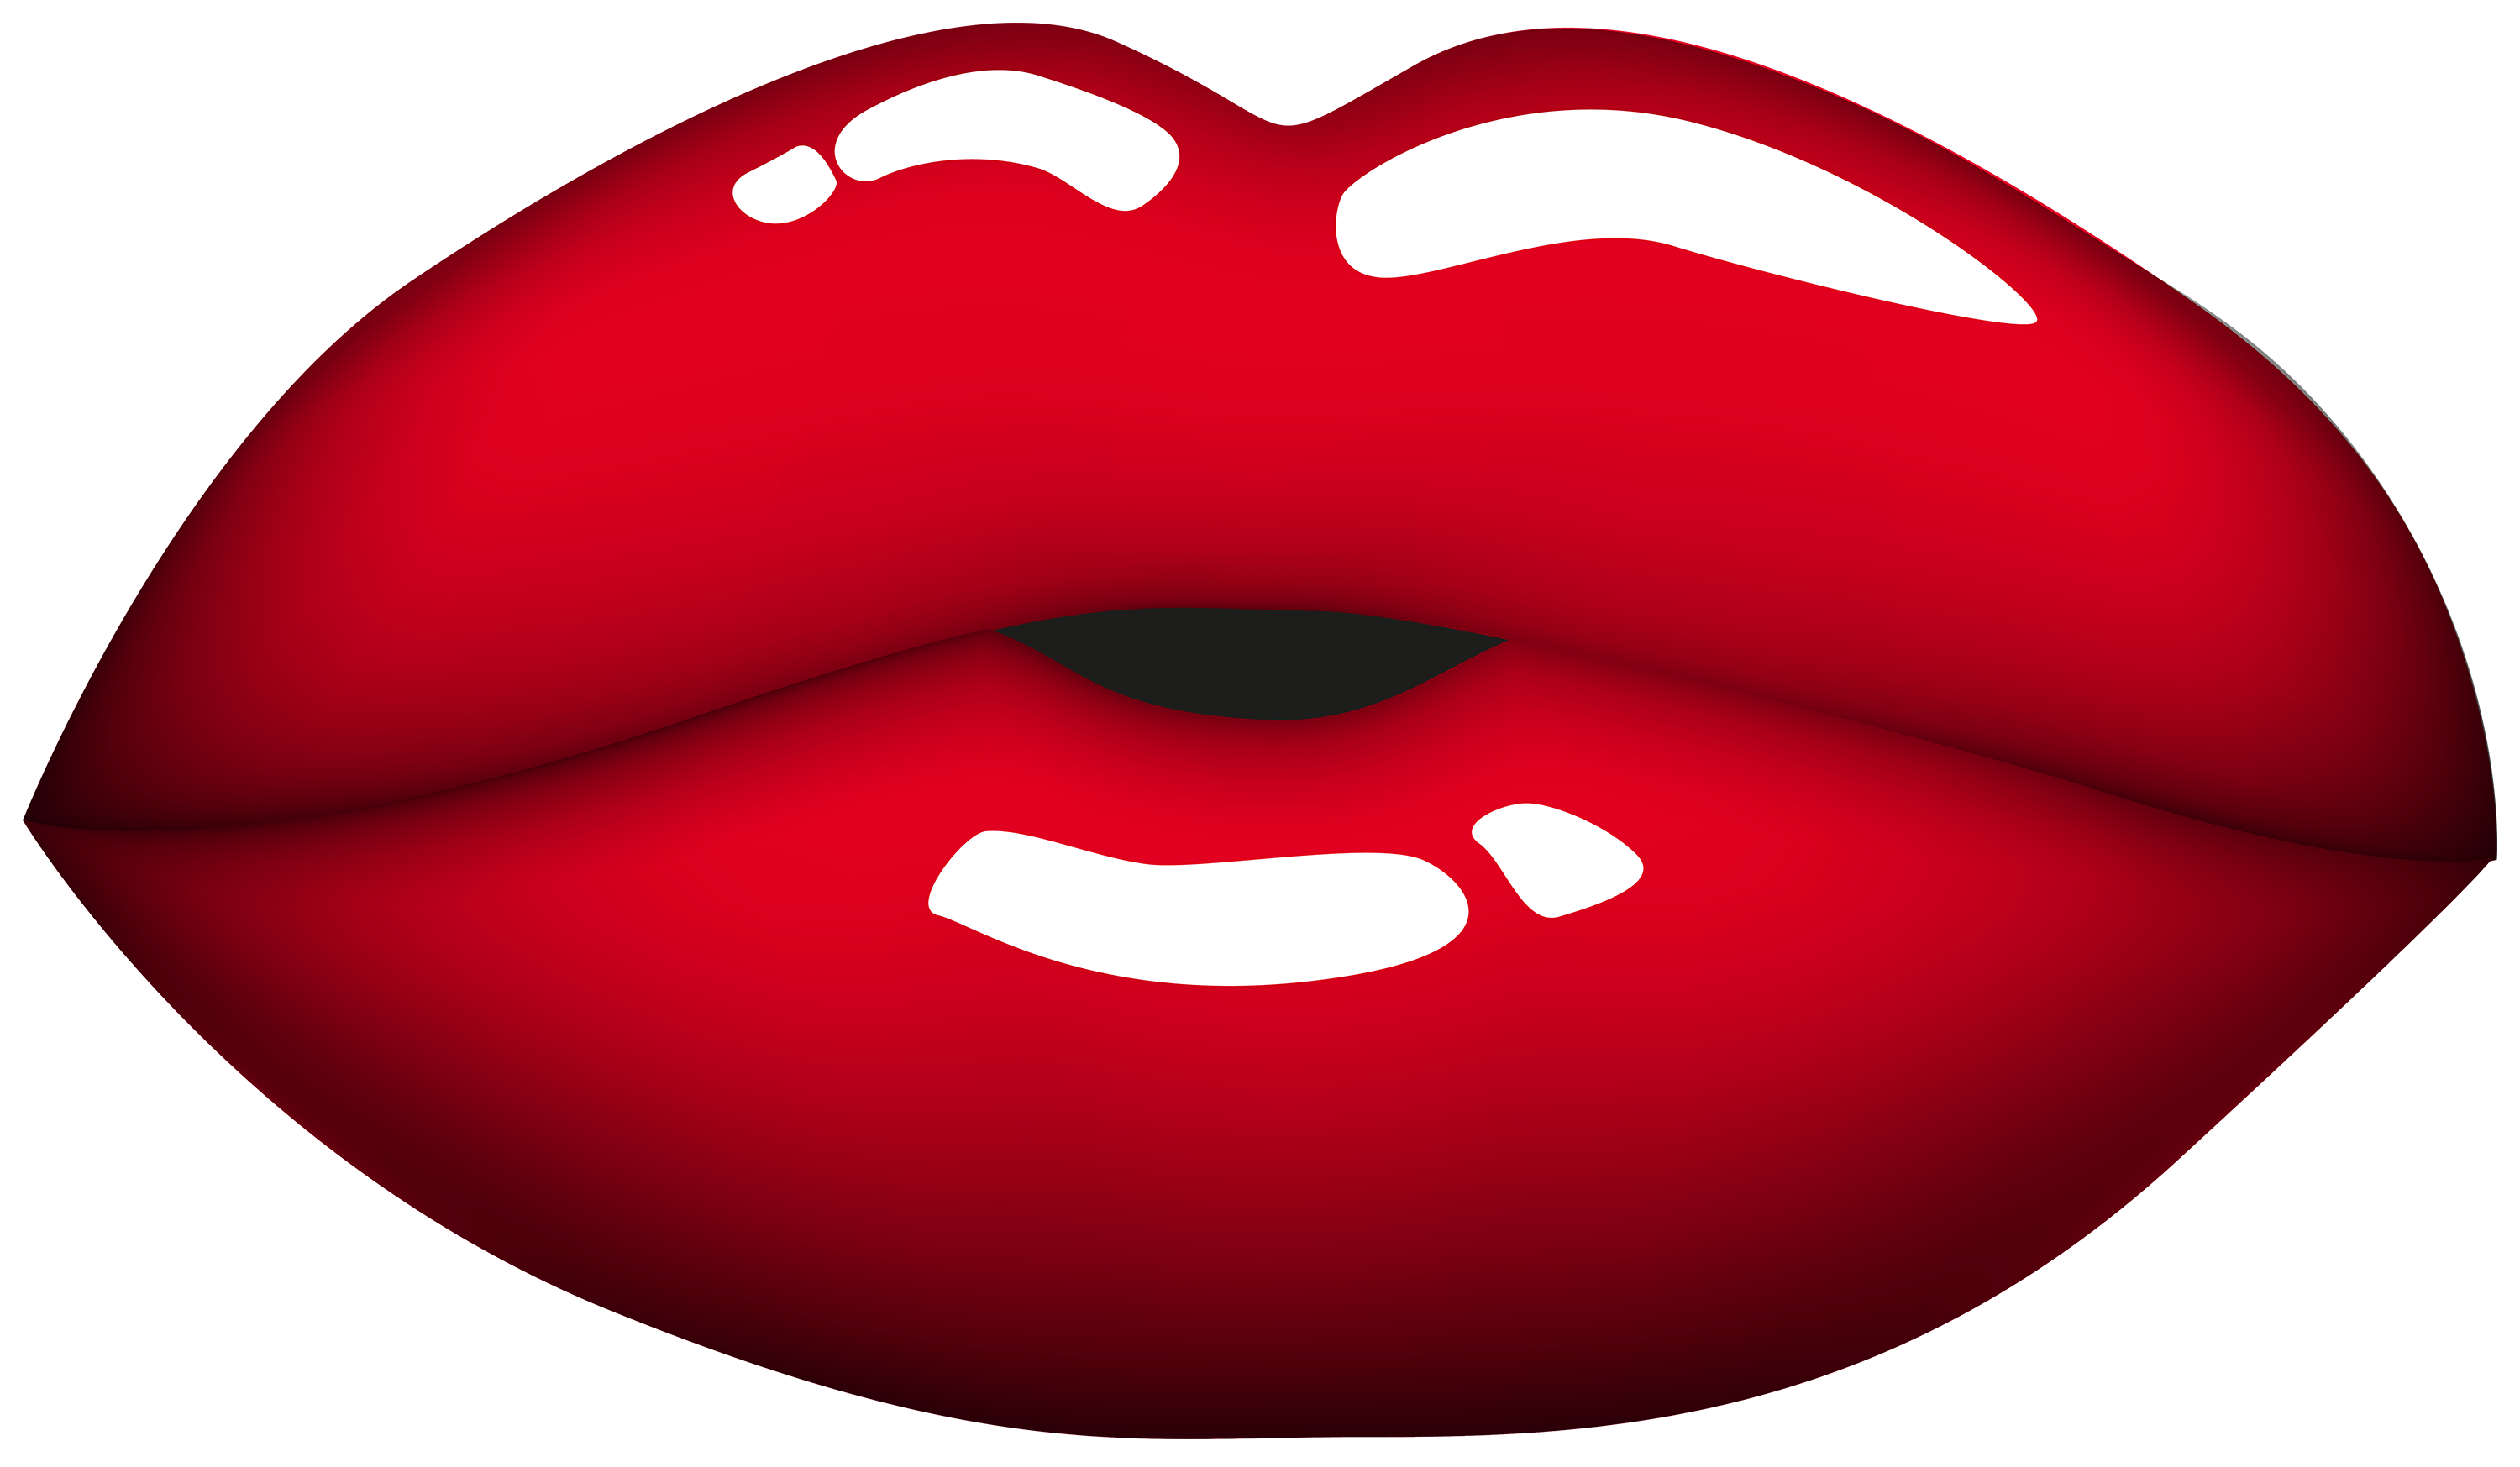 red mouth png clipart eyes lips and other body parts pinterest rh pinterest com clip art lips kiss clip art lipstick with transparent background